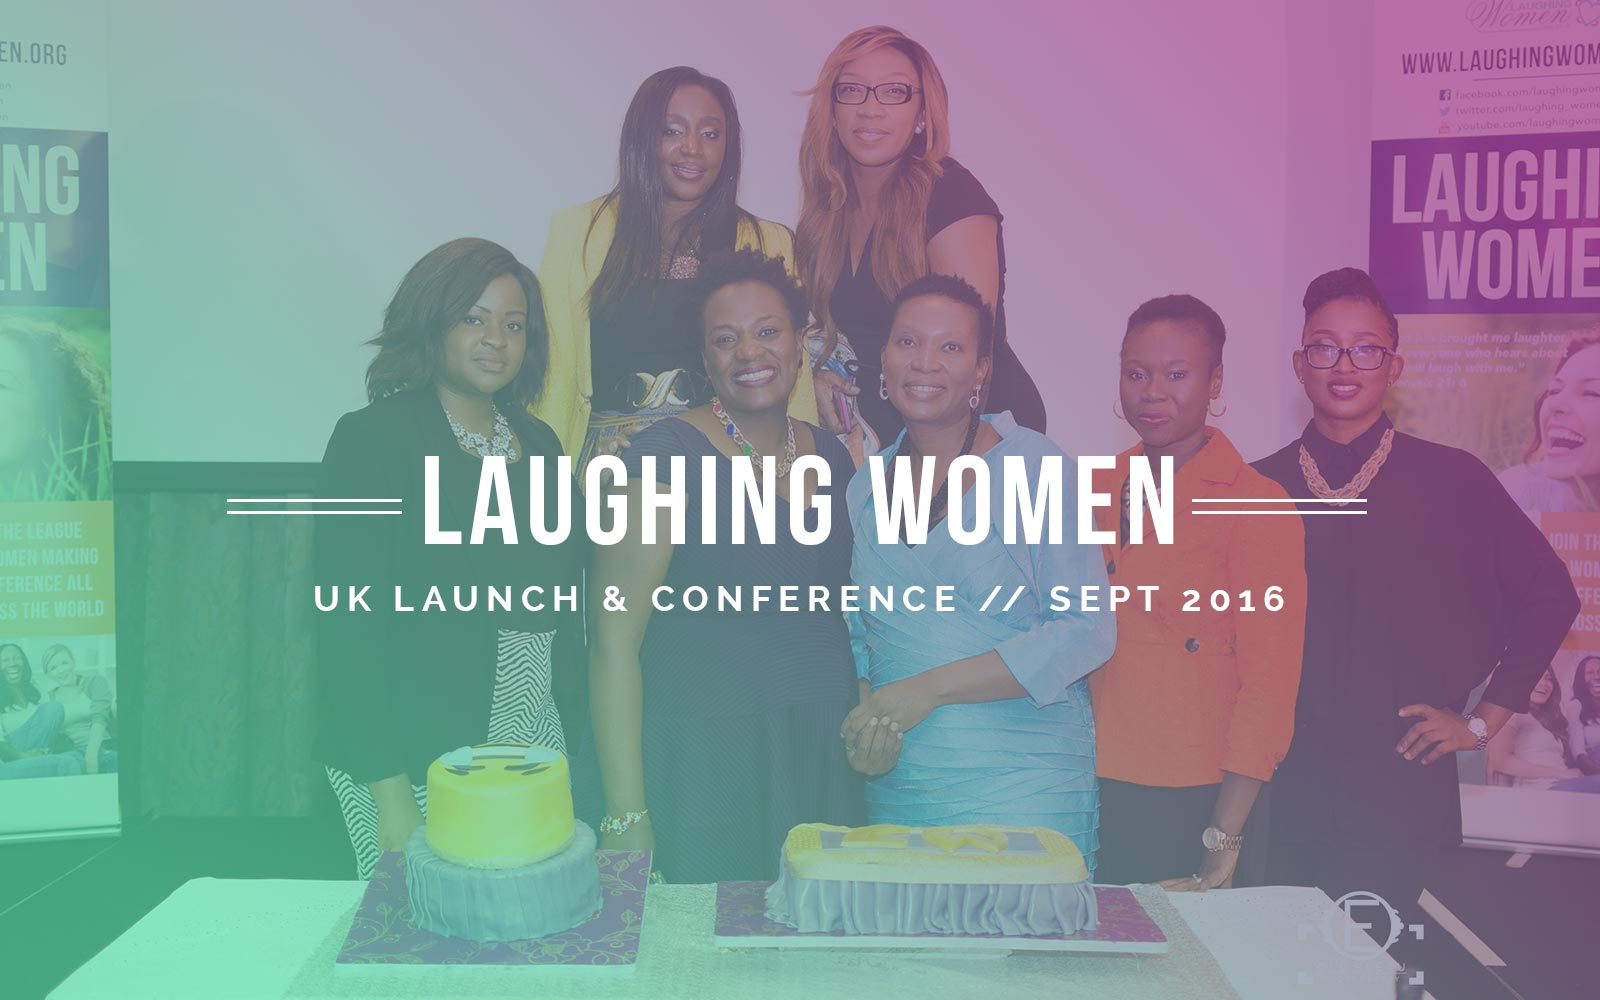 Banner-Laughing-Women-LaunchUK